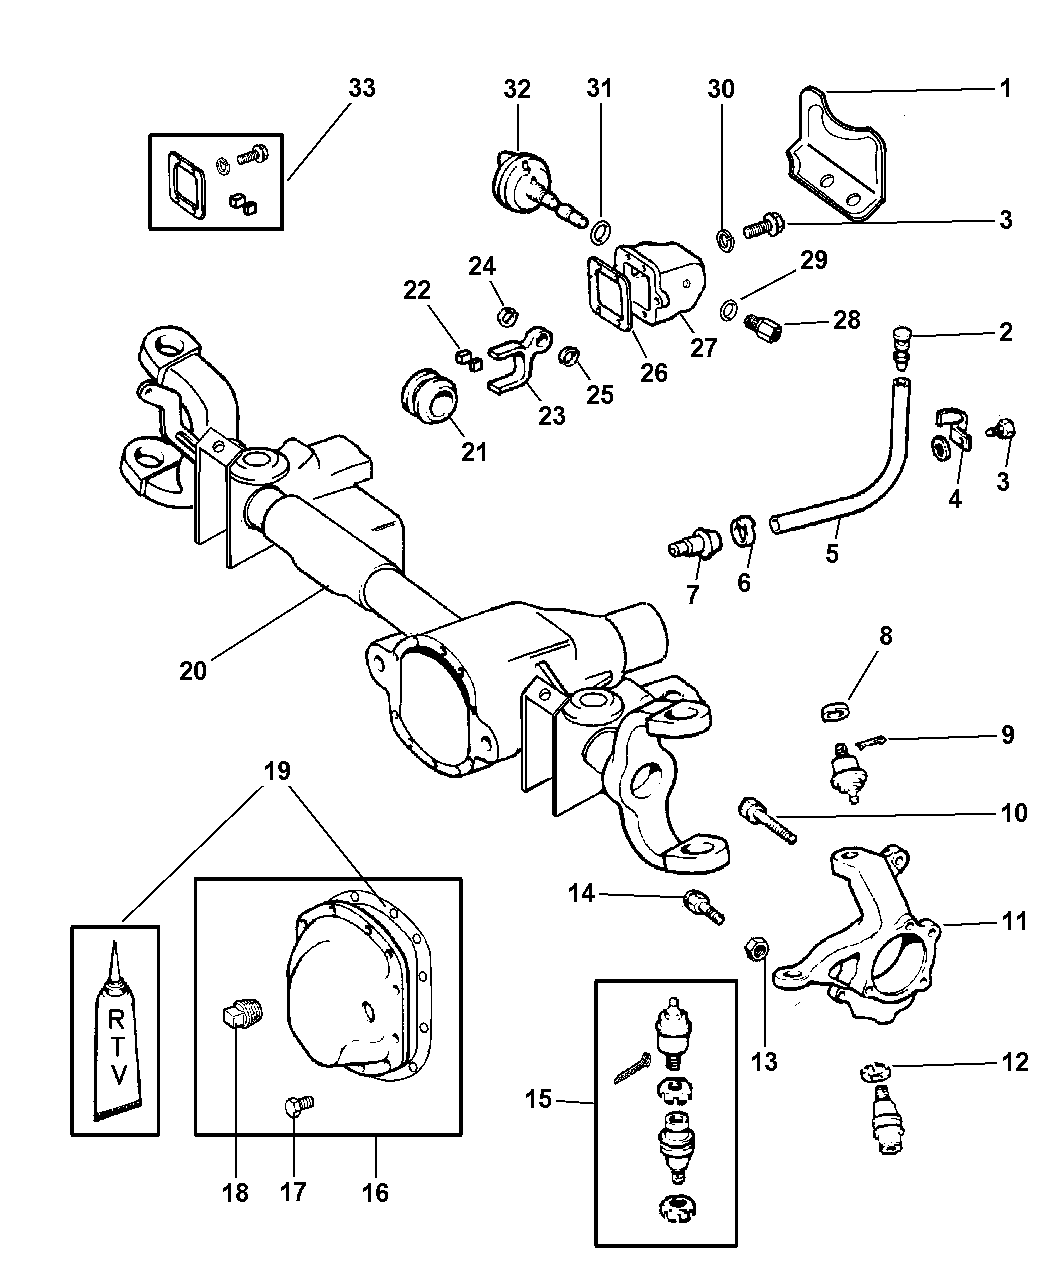 dodge ram 1500 fuel system diagram 97 dodge ram 1500 gas line diagram auto wiring diagrams  97 dodge ram 1500 gas line diagram